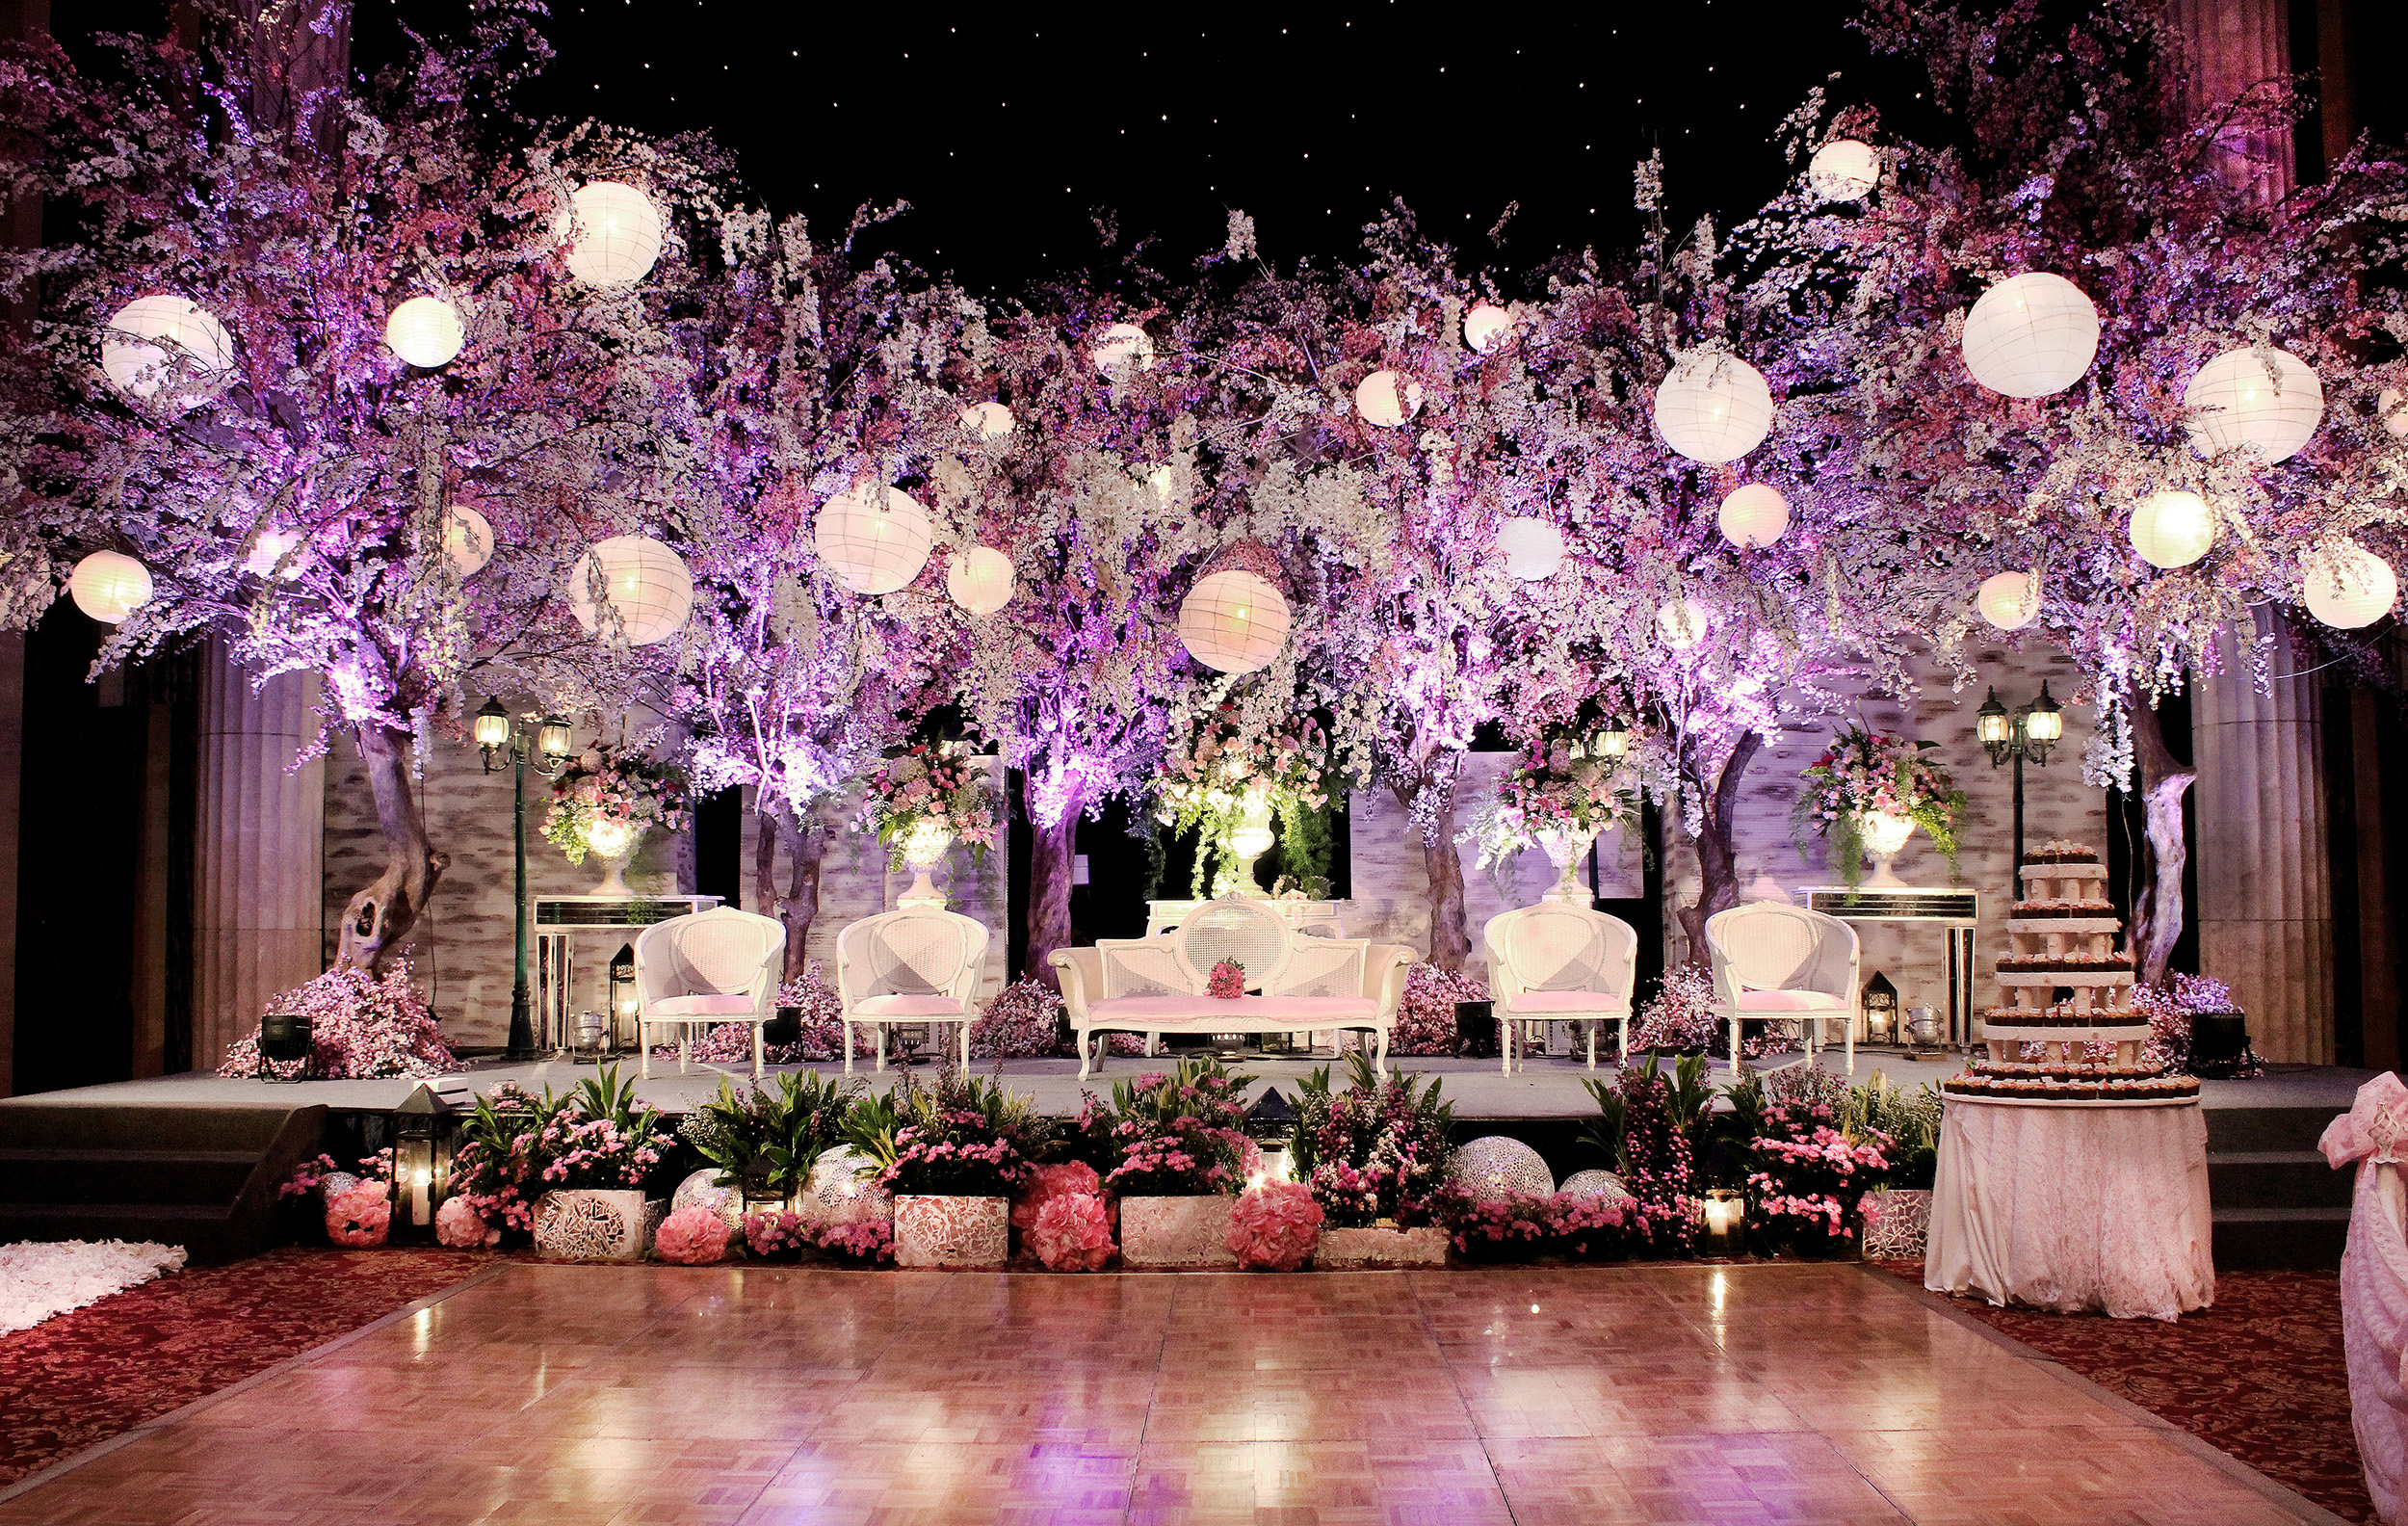 Azalia decorationwedding decoration azalia decoration sakura wedding decoration kempinski hotel jakarta by azalia decoration junglespirit Choice Image